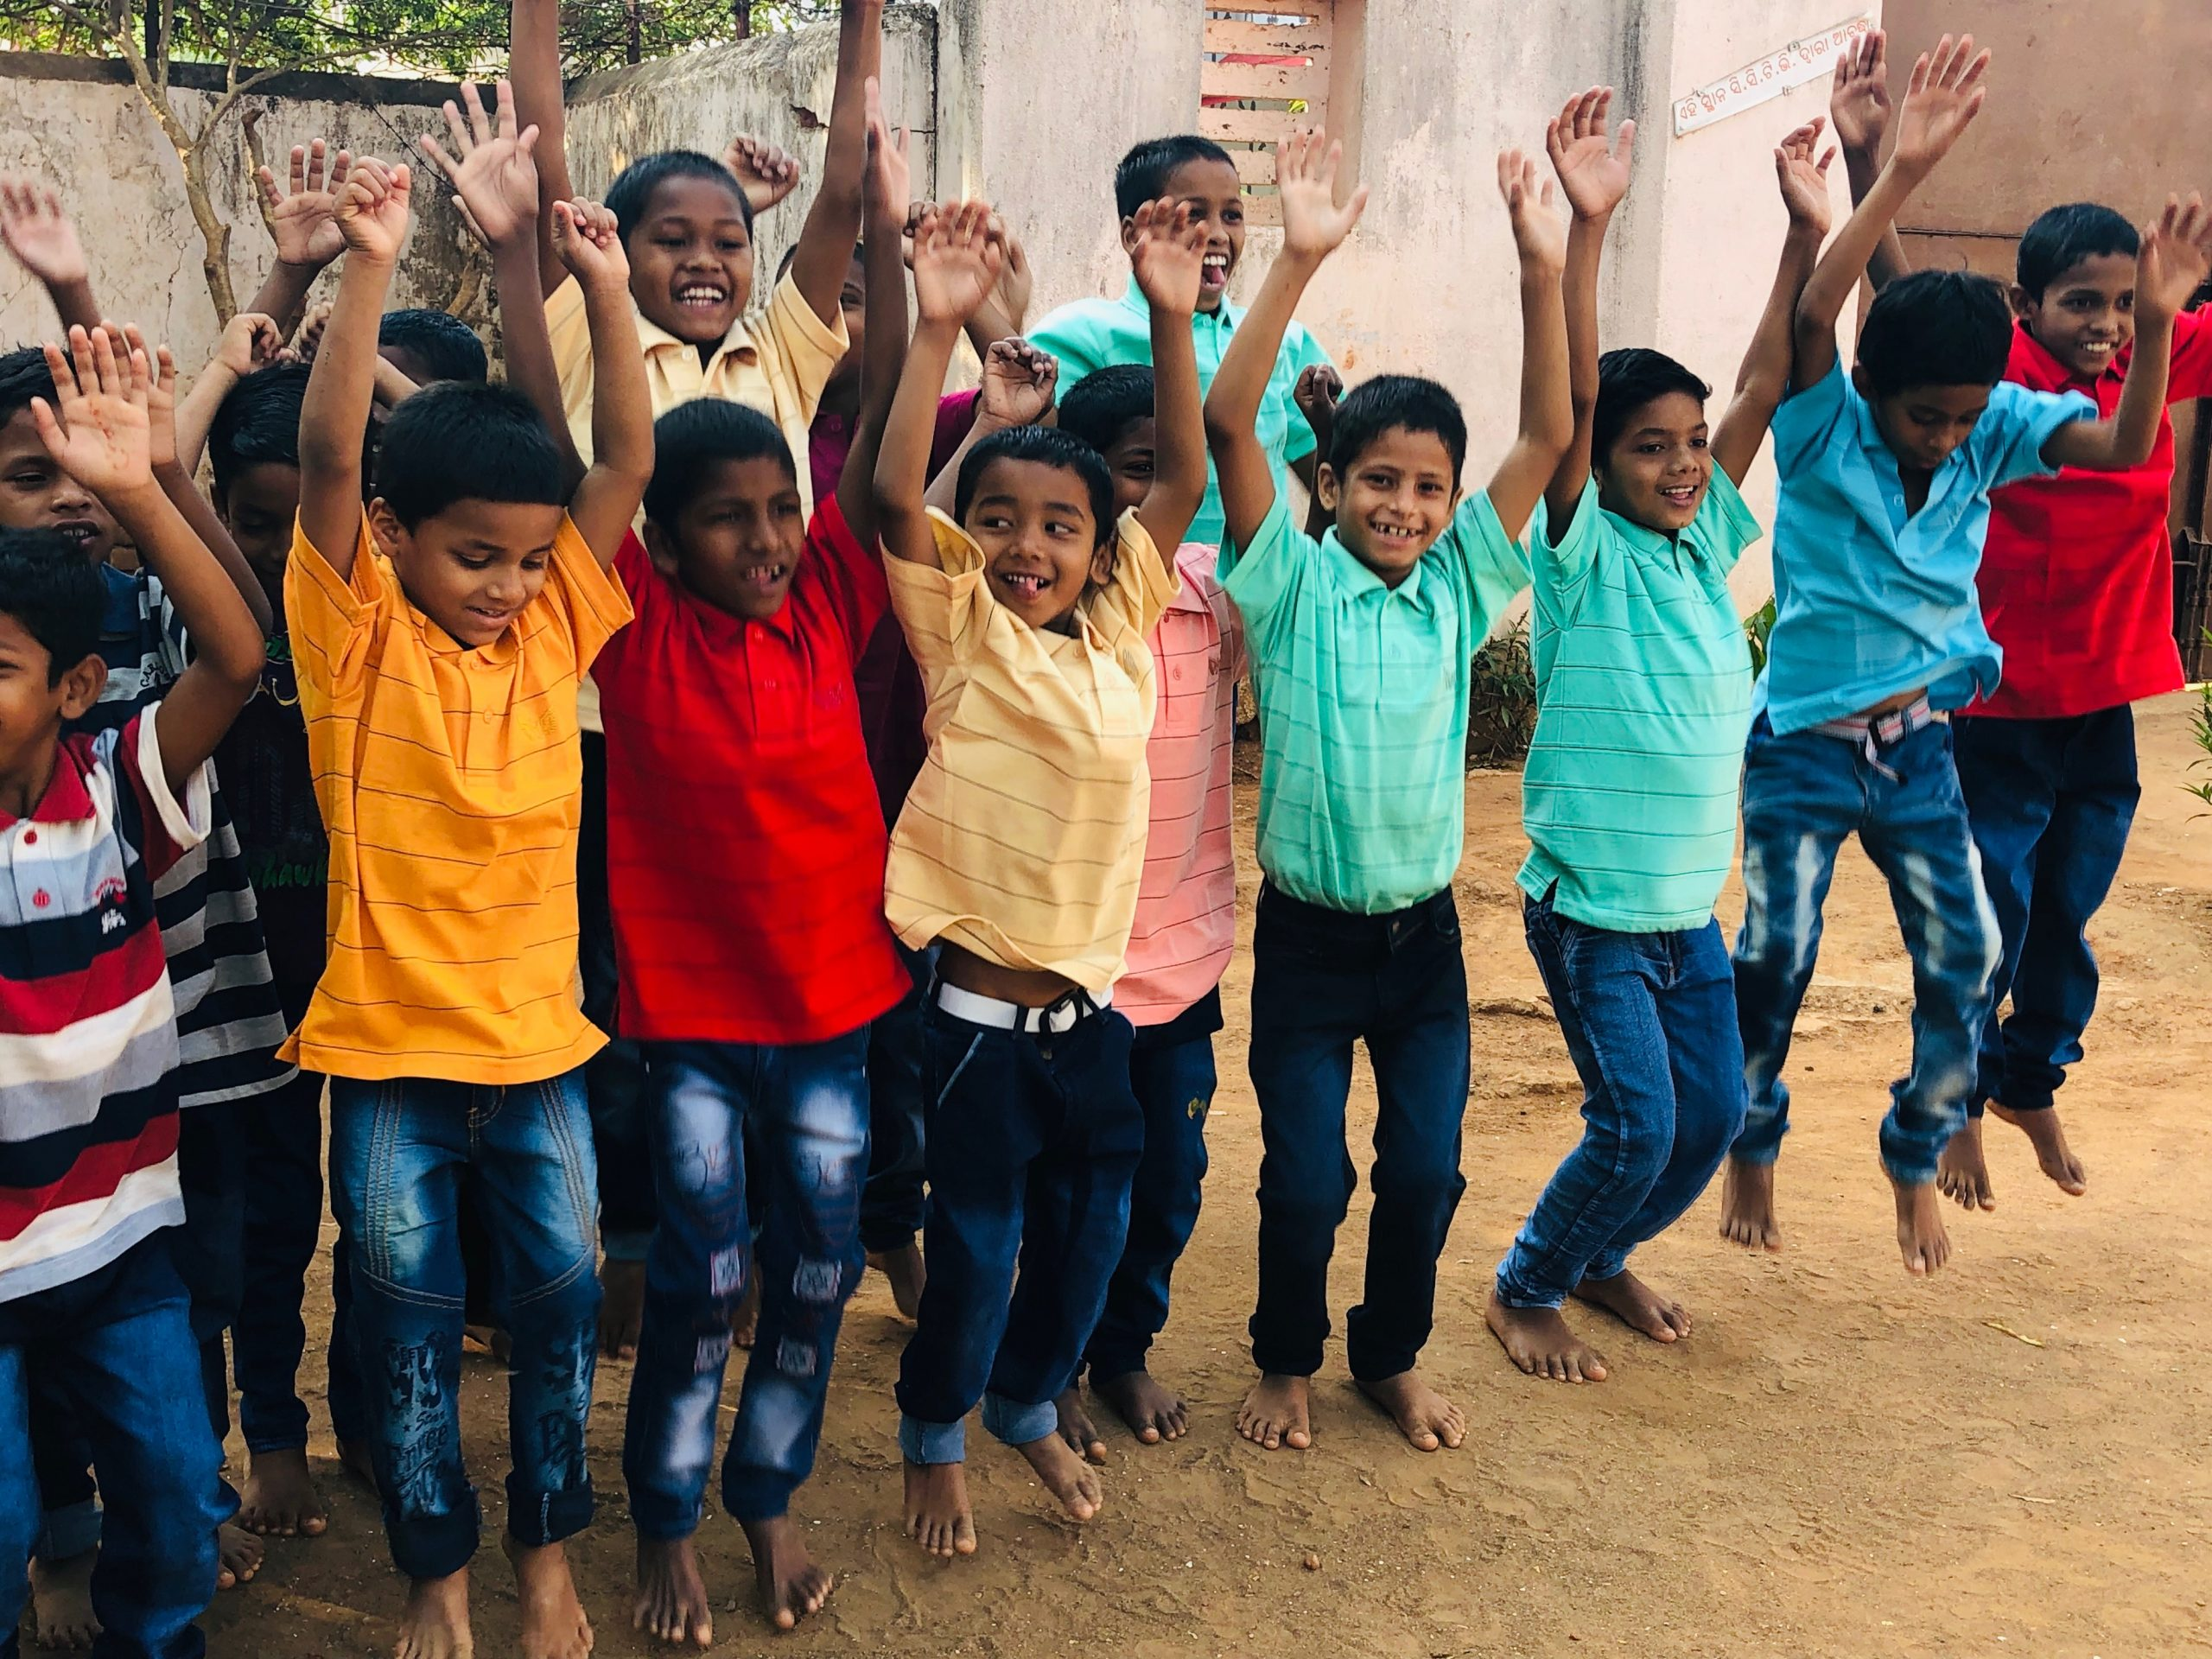 A group of young boys in a child care institution in India